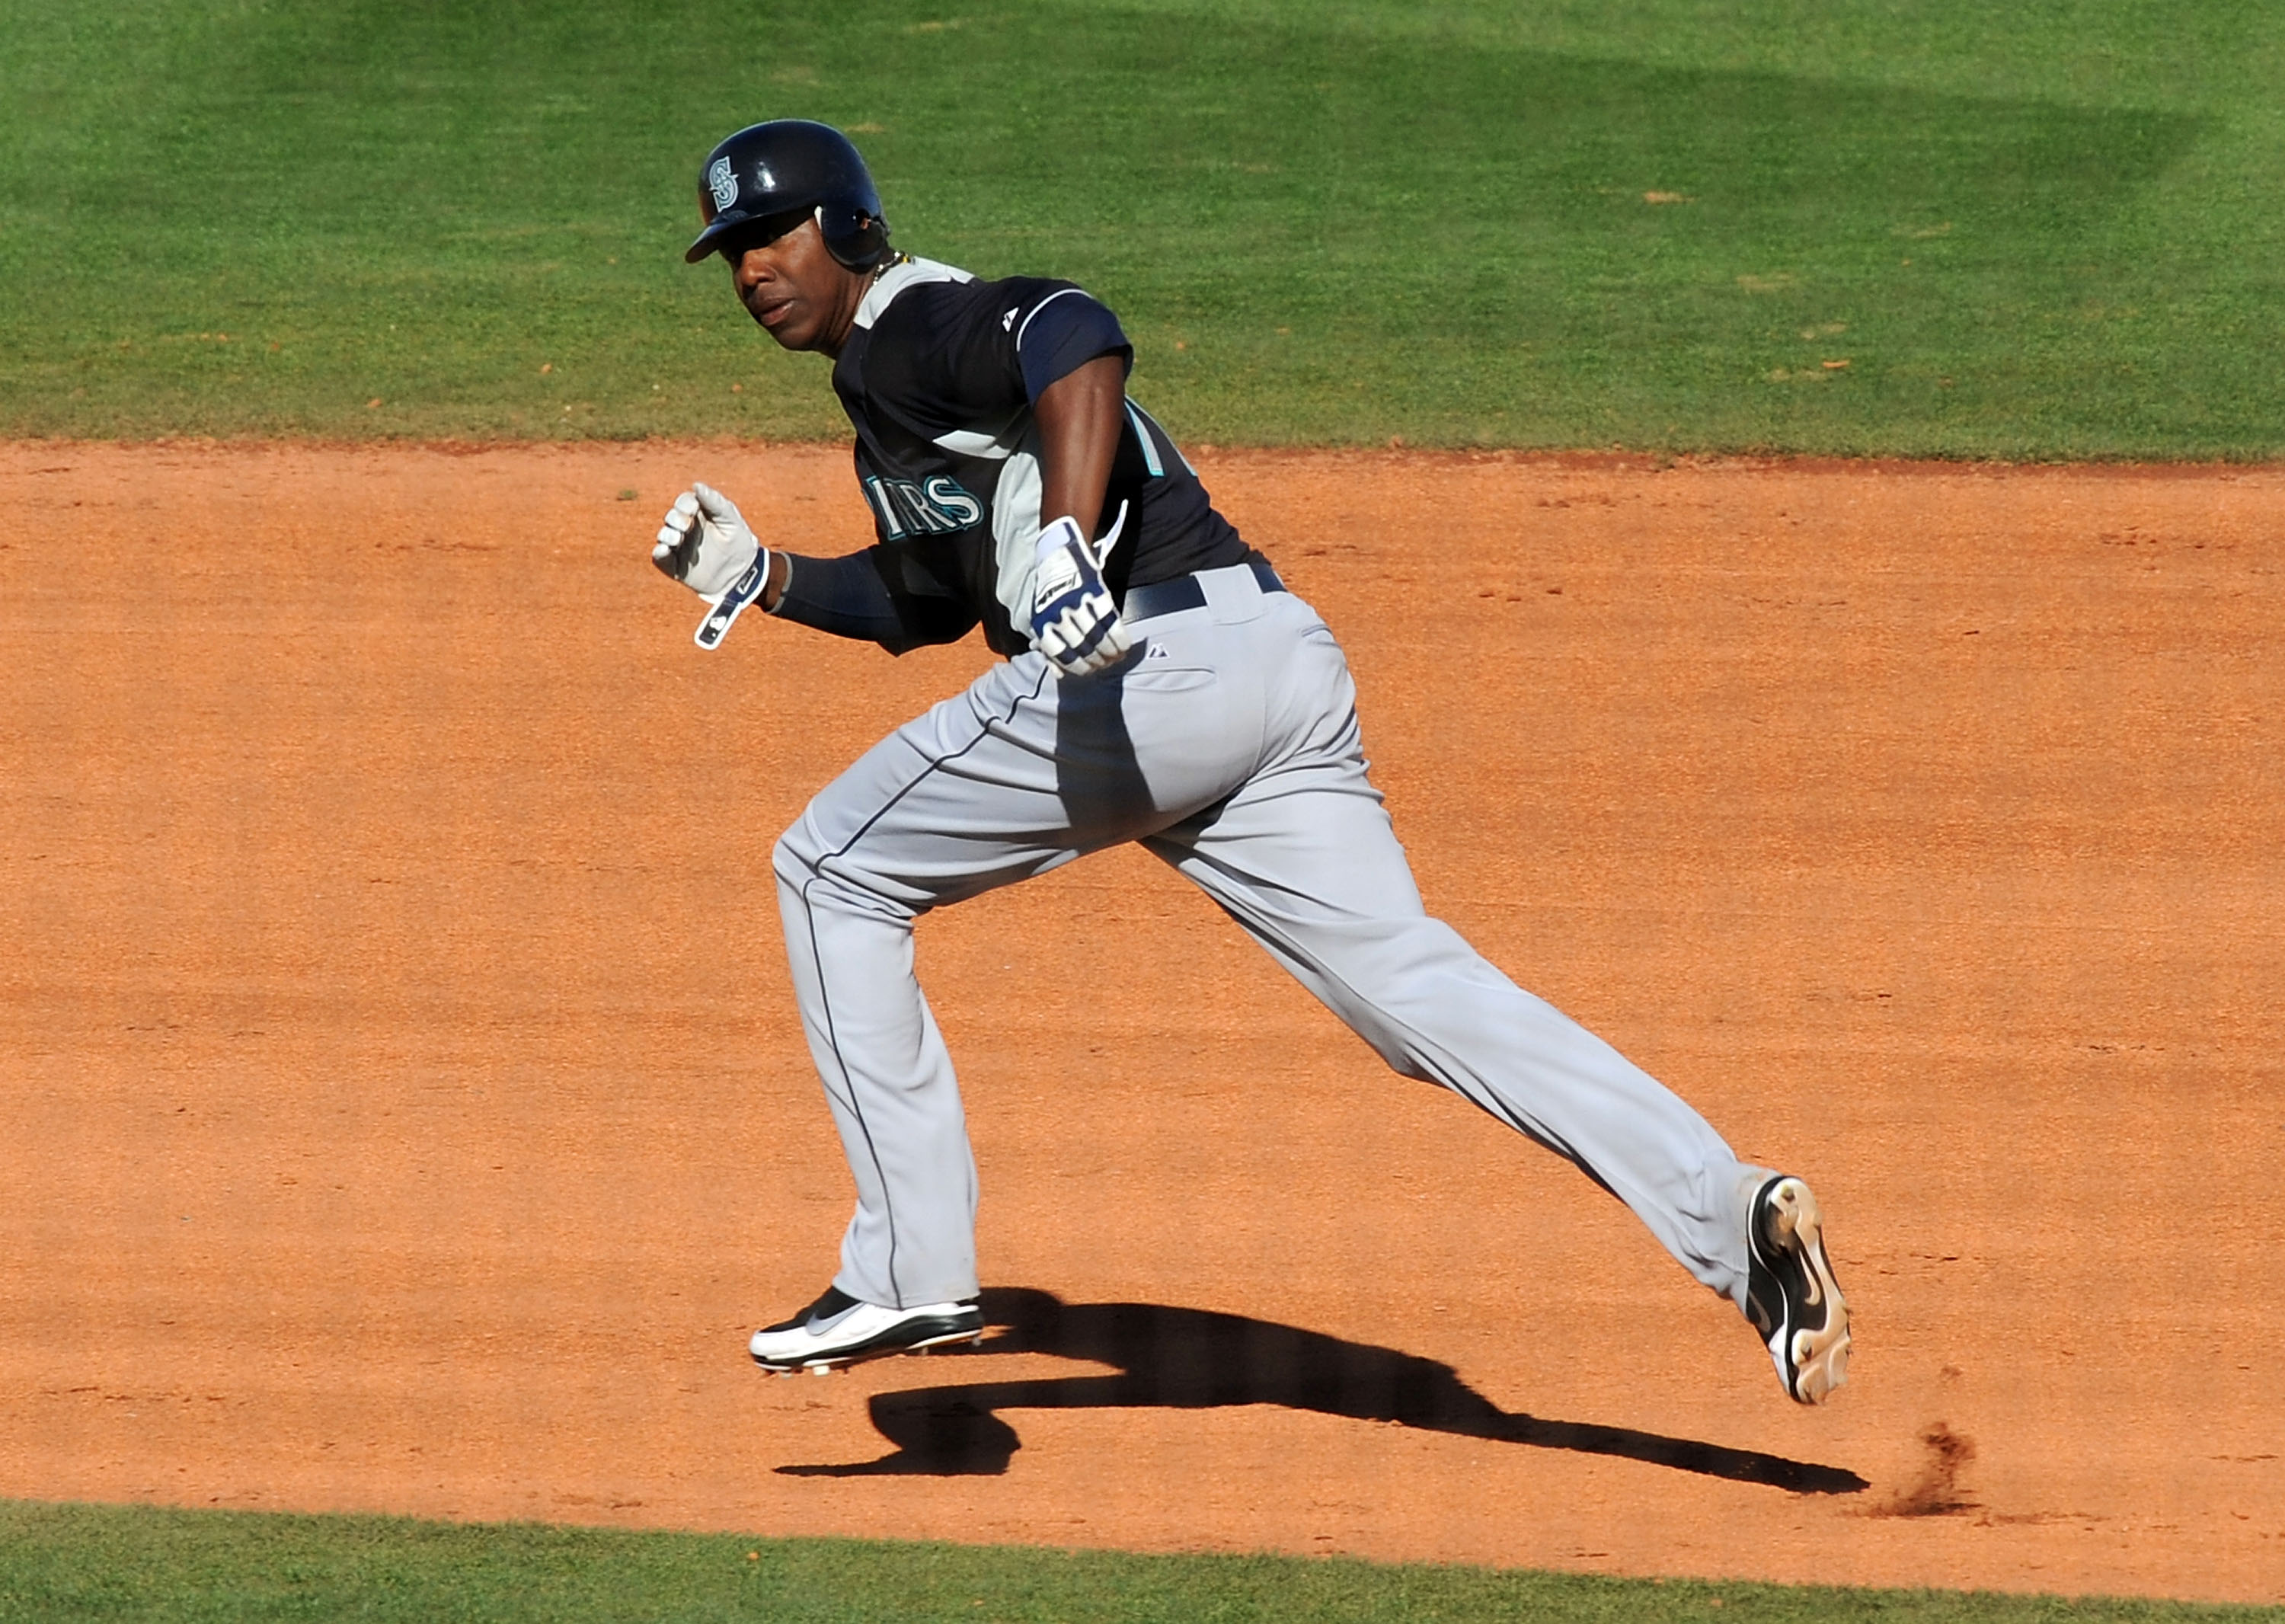 GOODYEAR, AZ - MARCH 11:  Johermyn Chavez #70 of the Seattle Mariners runs to second base while watching for the ball against the Cleveland Indians at Goodyear Ballpark on March 11, 2011 in Goodyear, Arizona.  (Photo by Norm Hall/Getty Images)